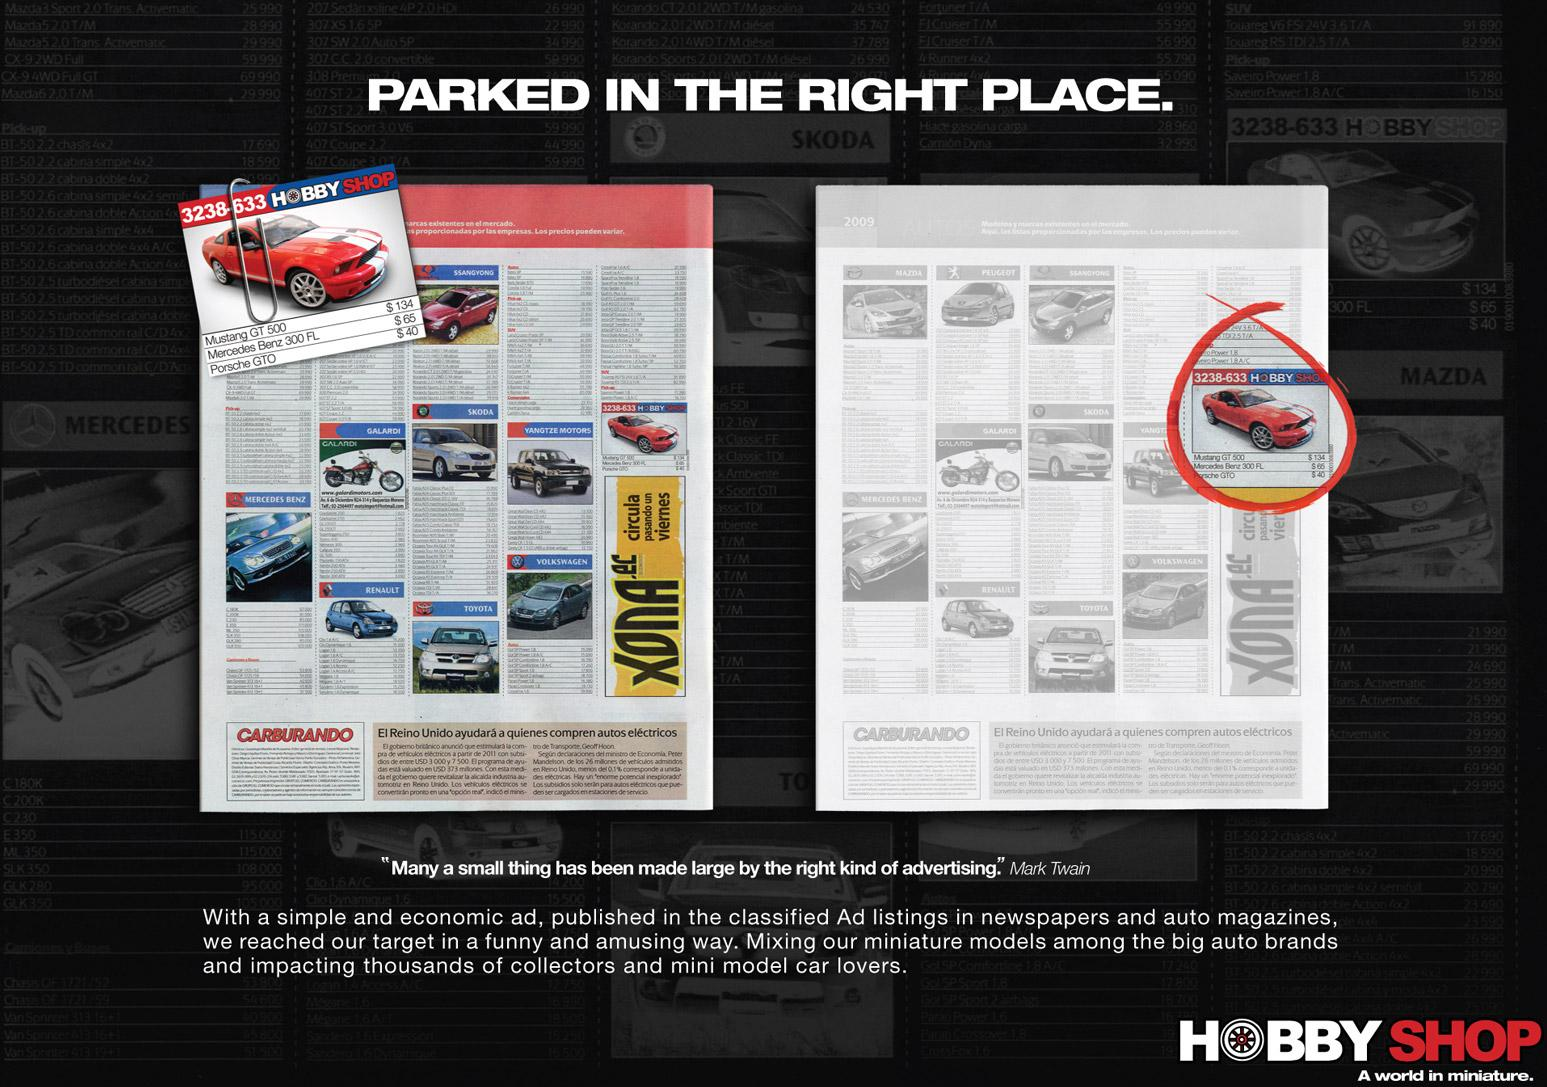 Hobby Shop Print Ad -  Parked in the right place